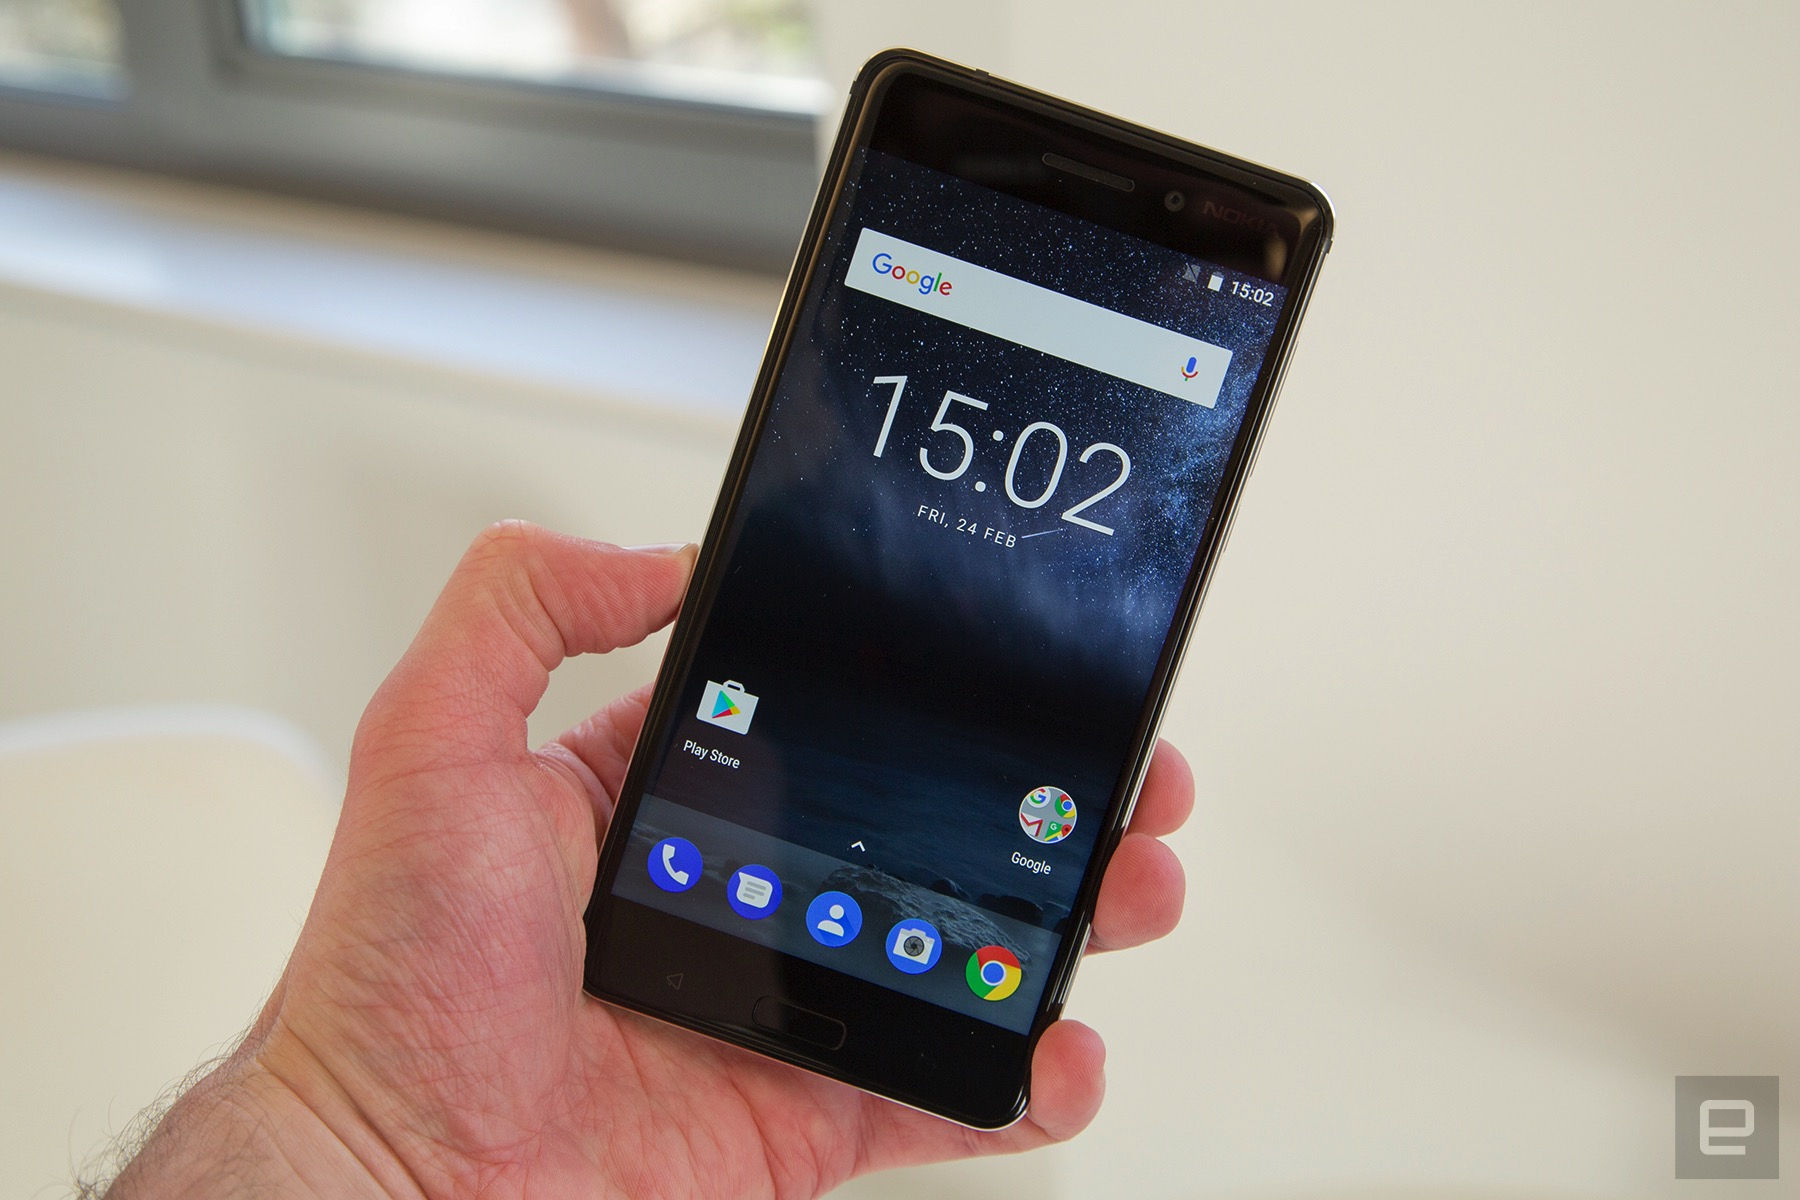 Nokia 6 Arte Black Video Nokia S Fresh Start Hinges On These Android Phones